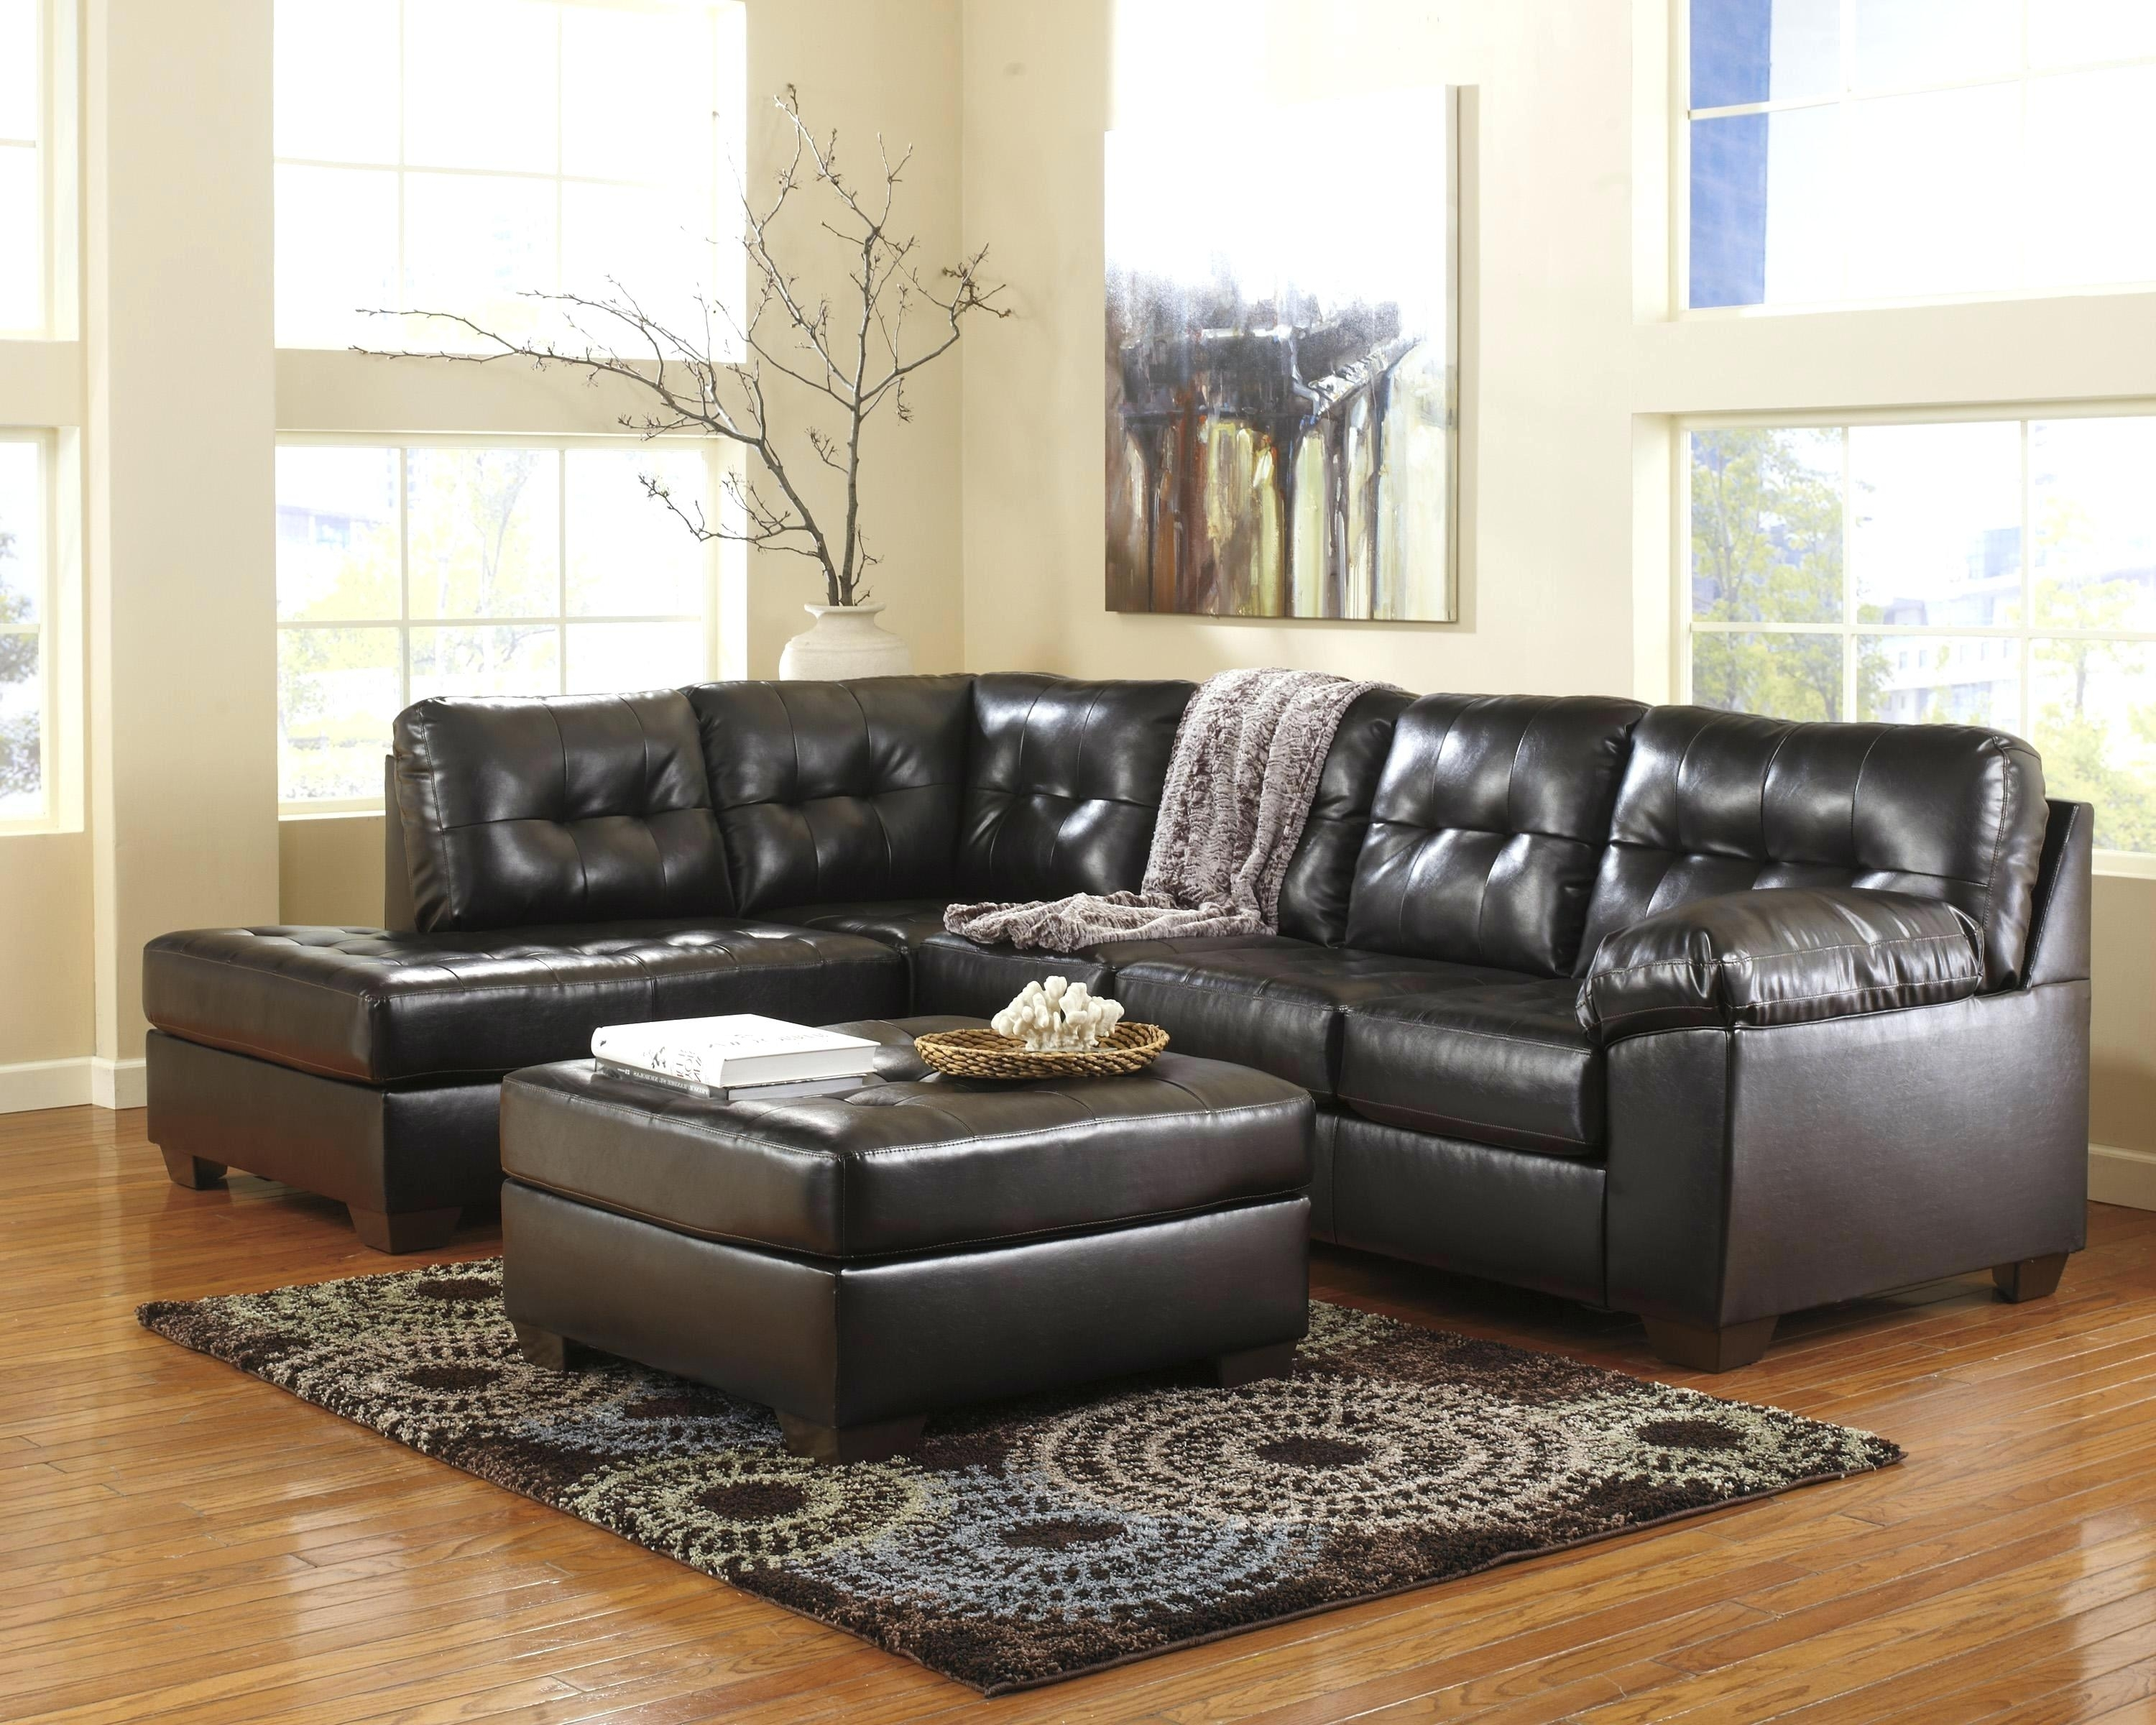 Ashley Furniture Wilmington Nc Market St Signature Design With Regard To Wilmington Nc Sectional Sofas (Image 3 of 10)